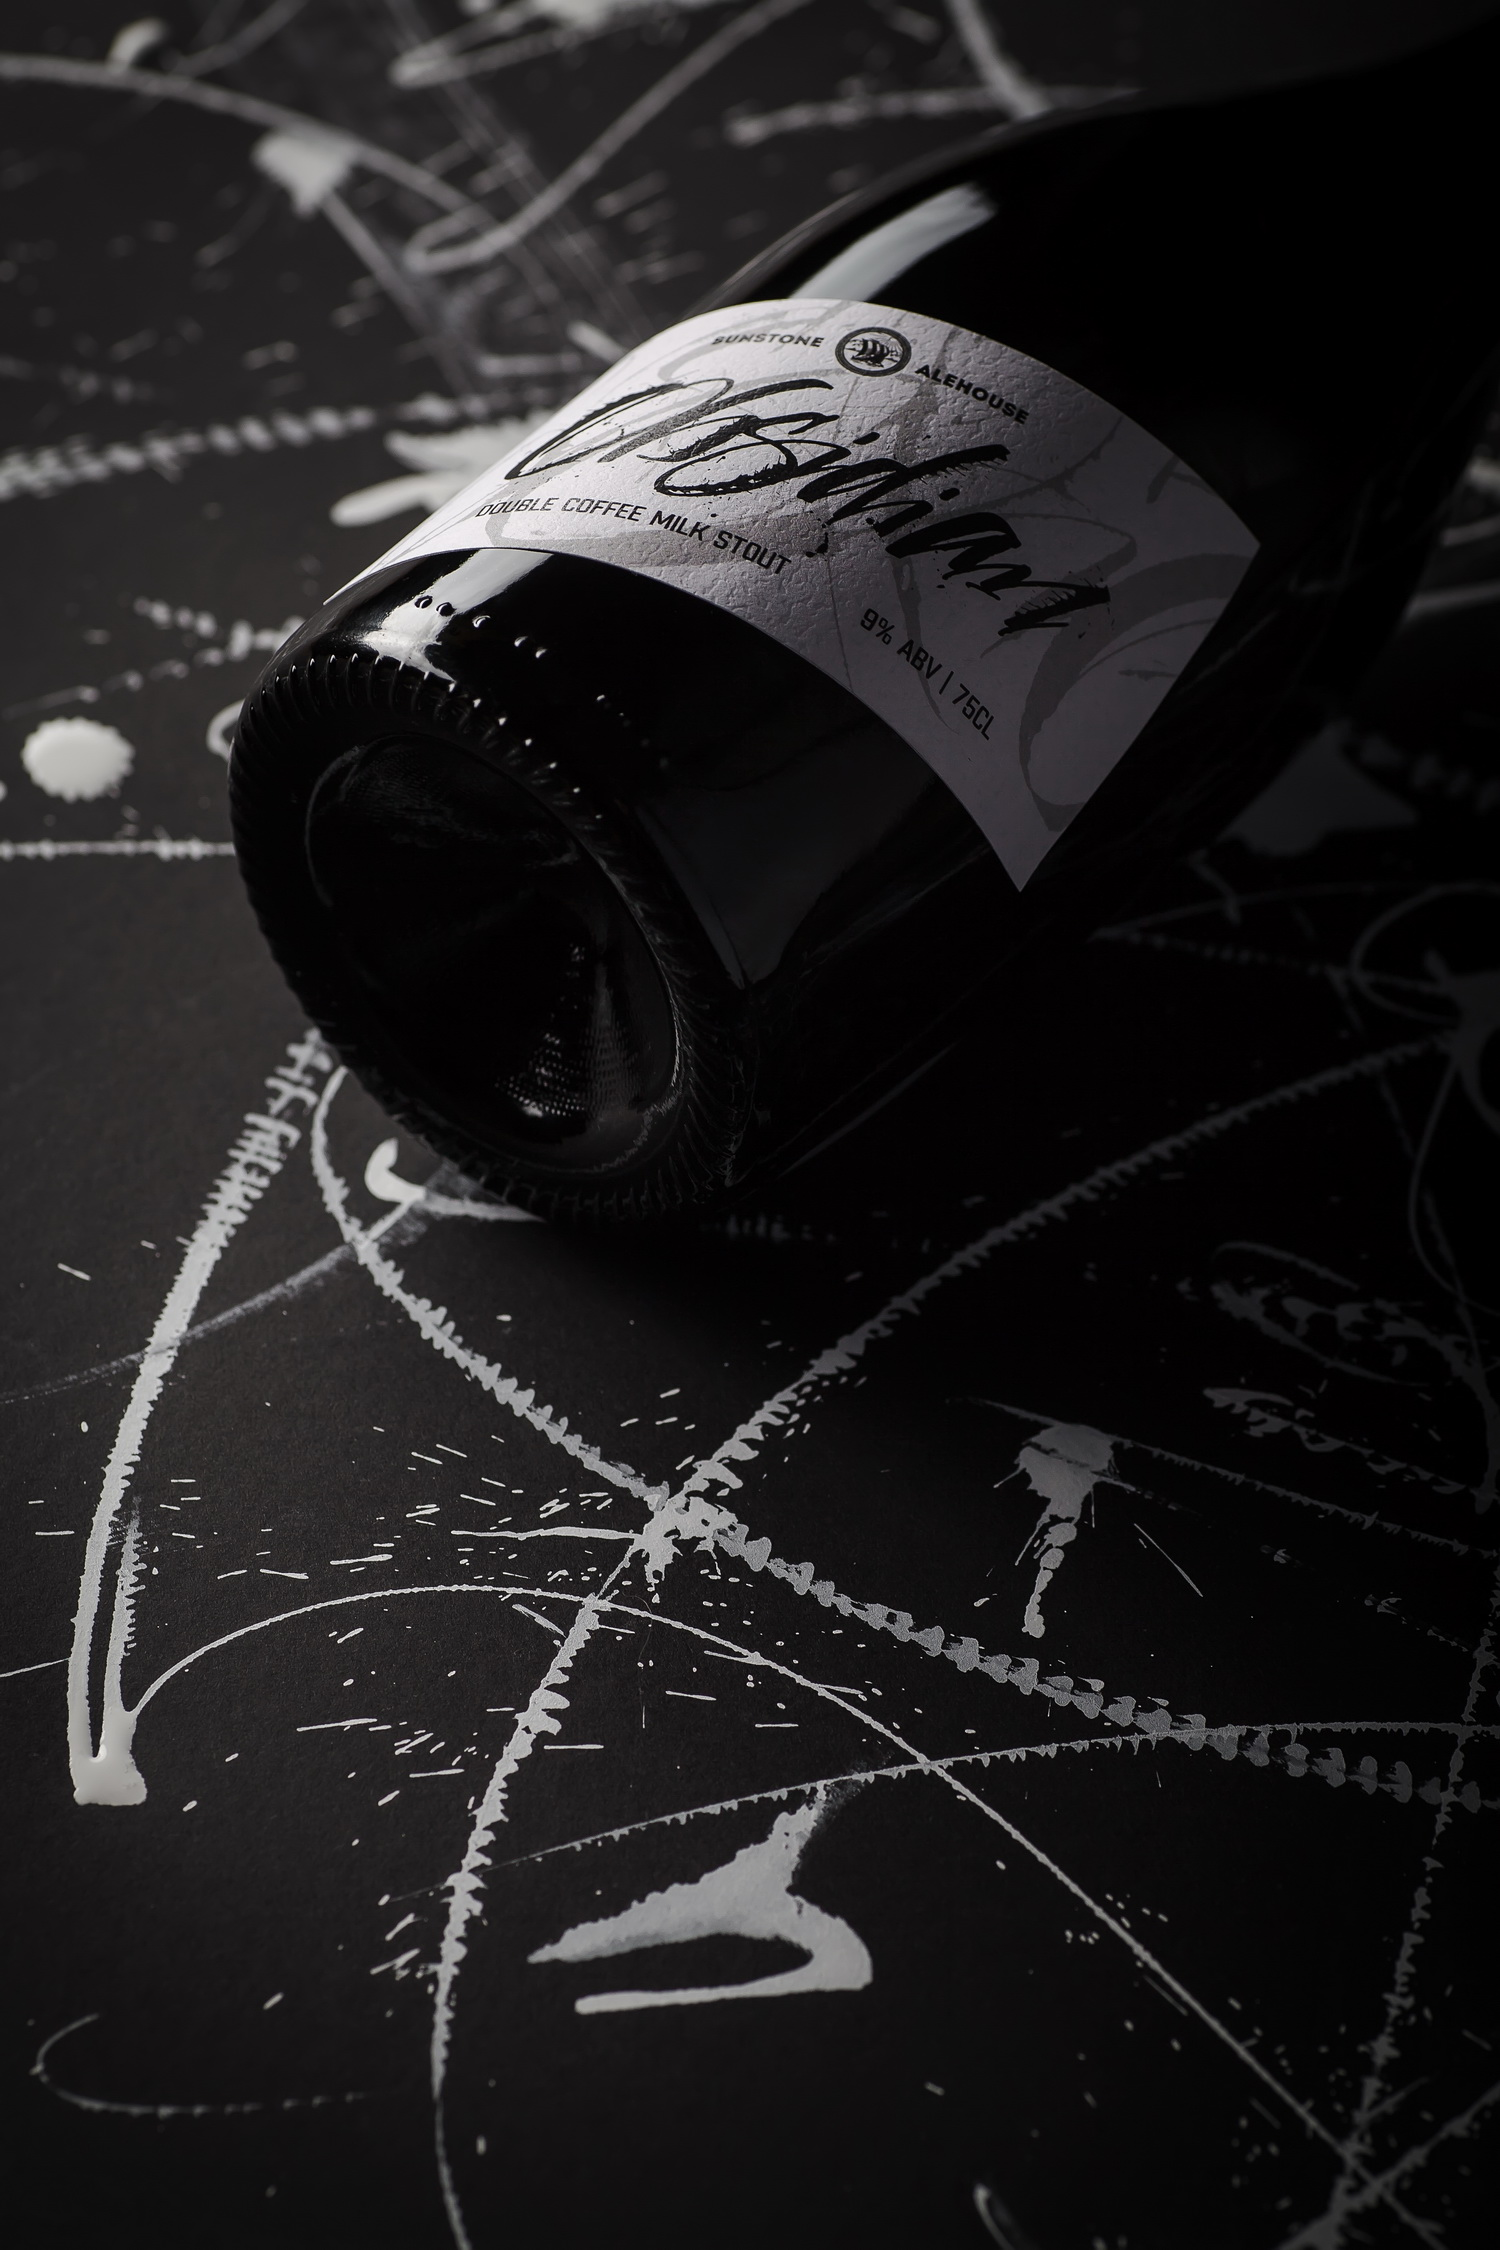 Calligraphic Craft Beer Label - Obsidian / World Brand Design Society